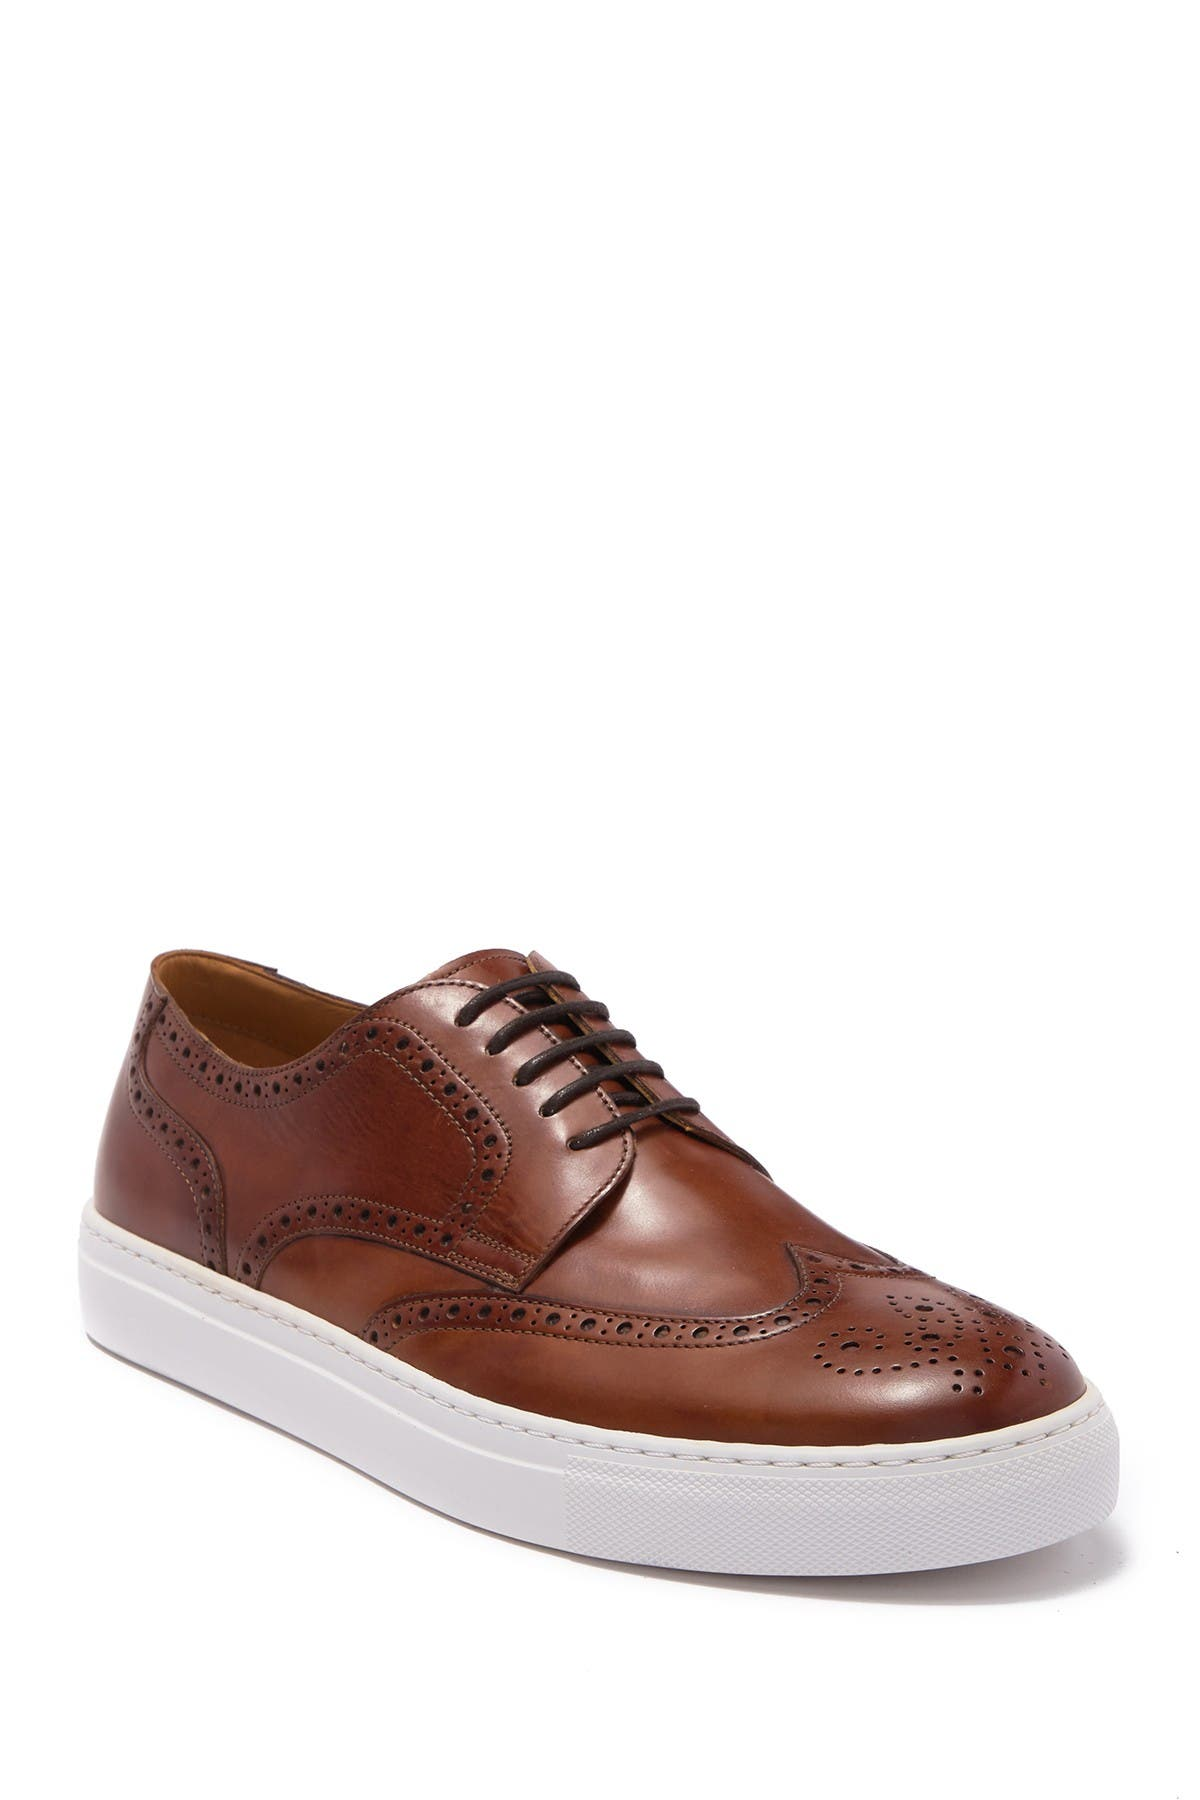 Image of Magnanni Rossi Leather Derby Sneaker